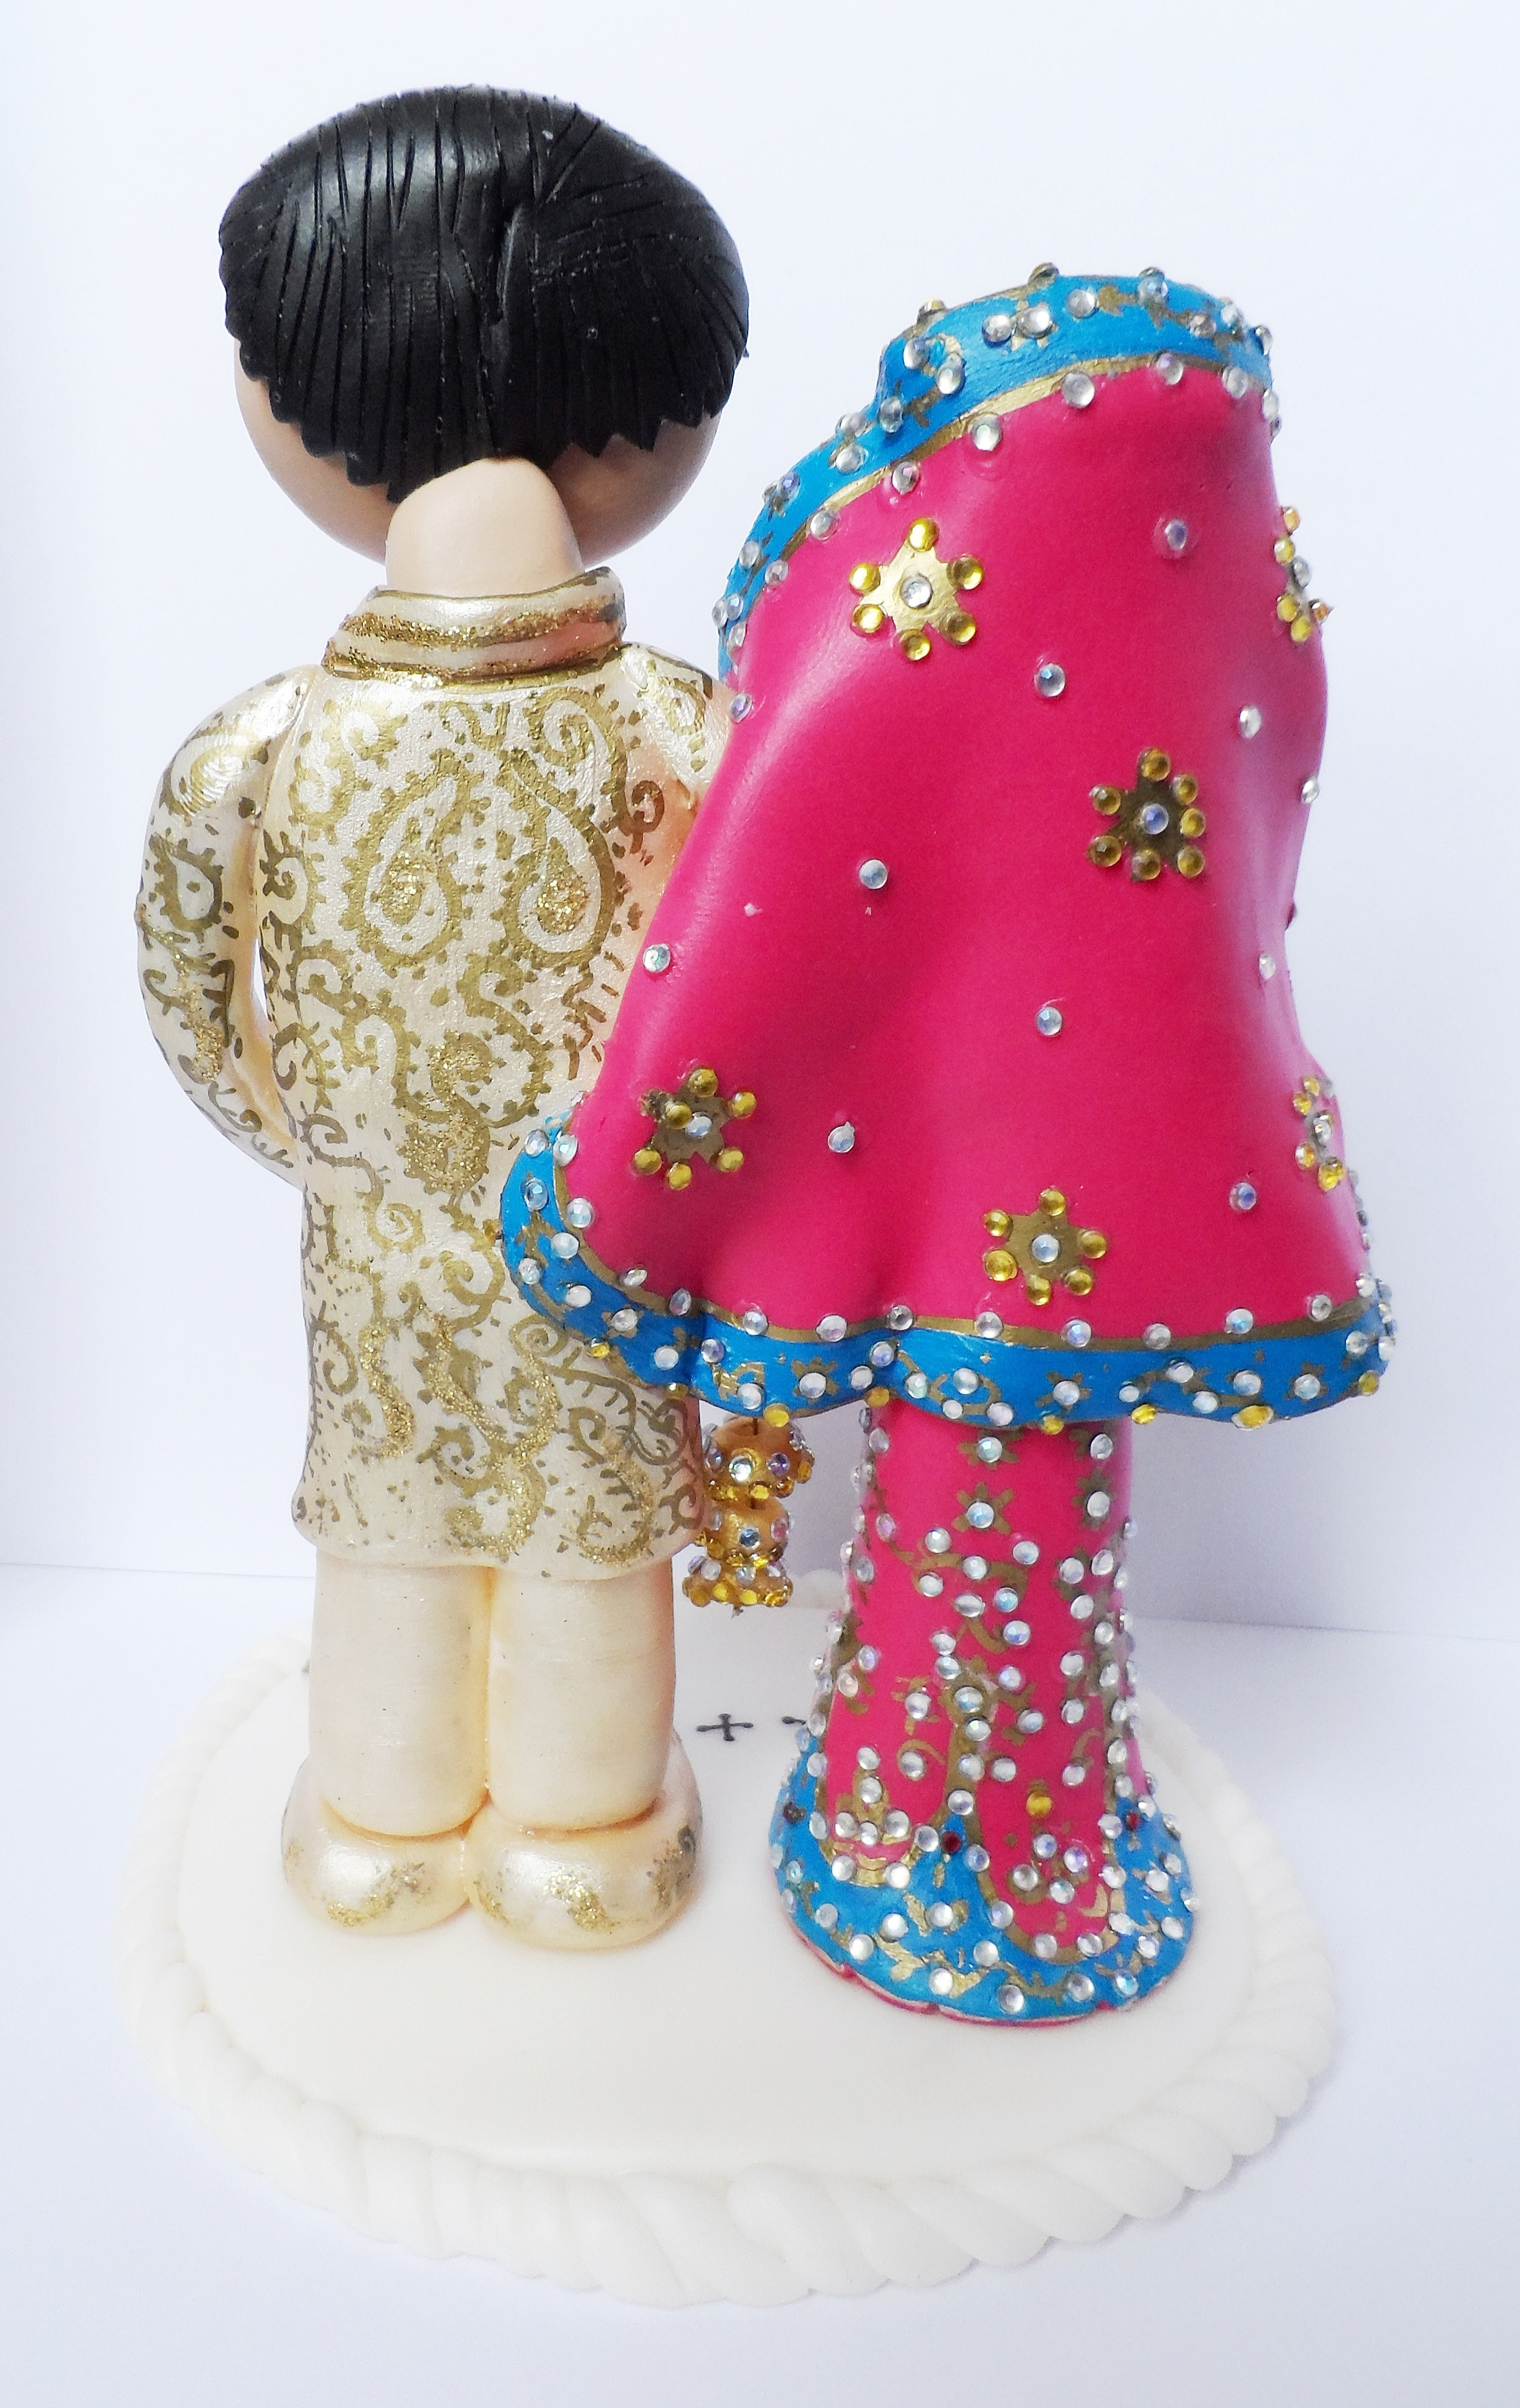 Asian Bride And Groom Wedding Cake Toppers